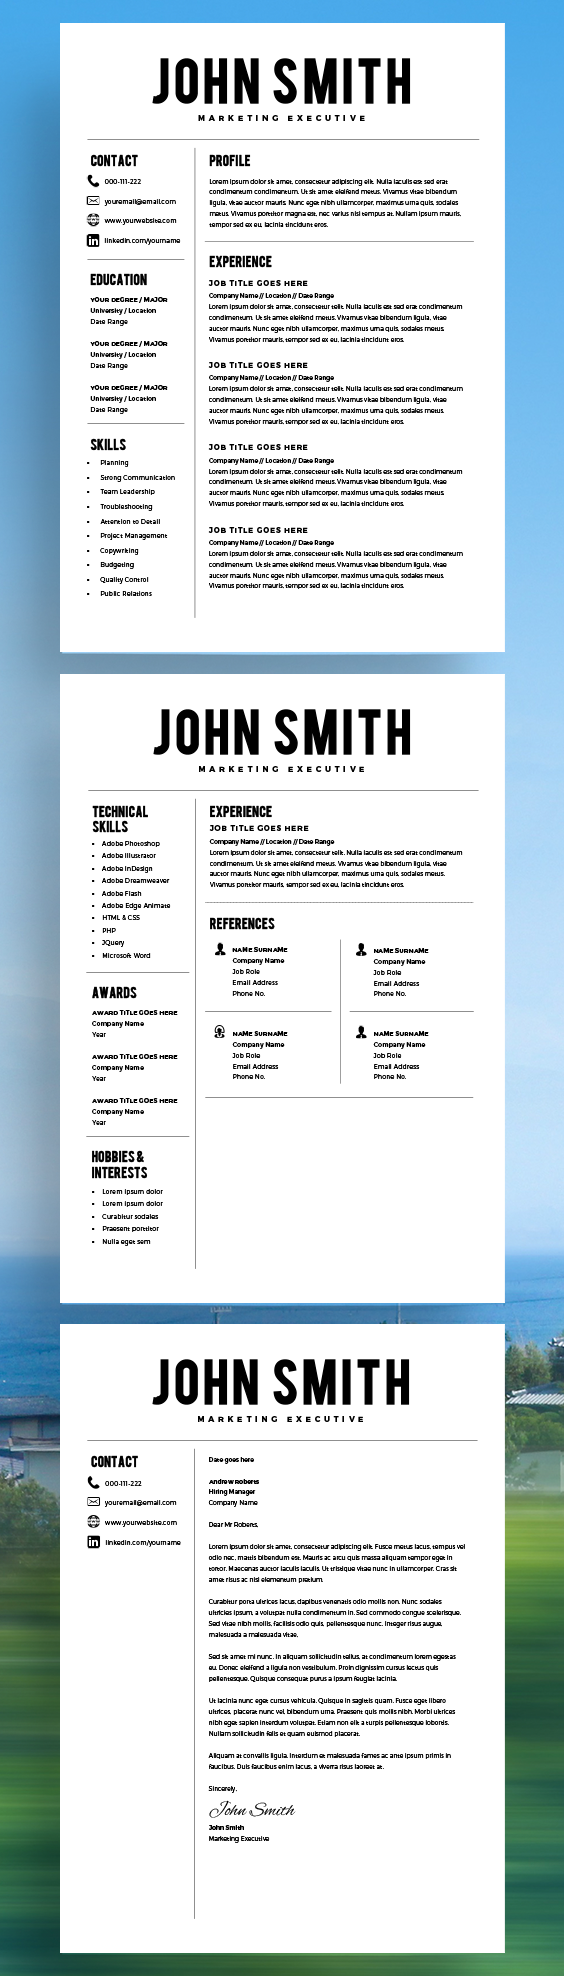 Cv Resume Builder Resume Template  Resume Builder  Cv Template  Free Cover Letter